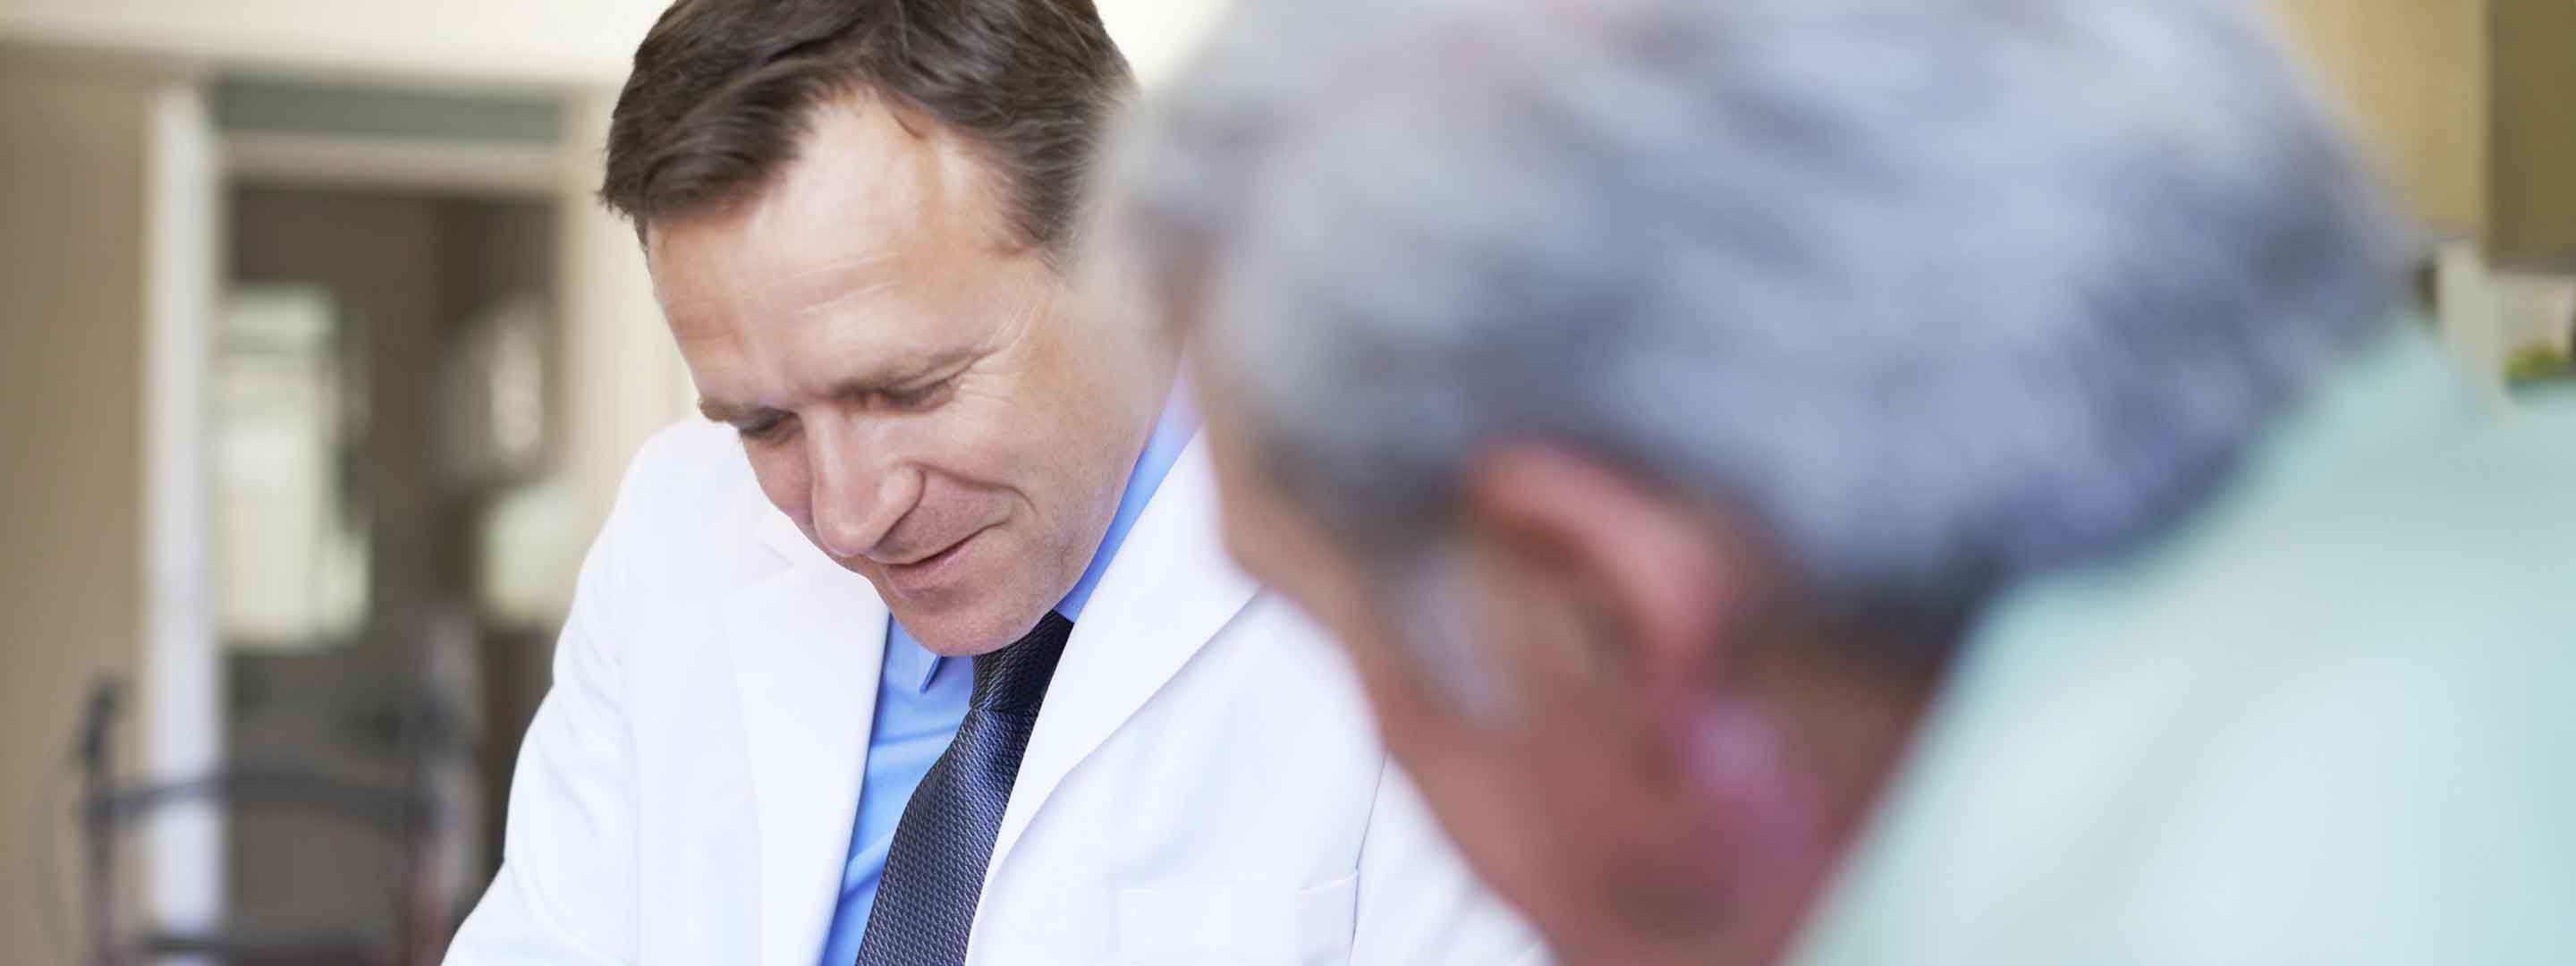 Audiologist talking to a patient about hearing insurance